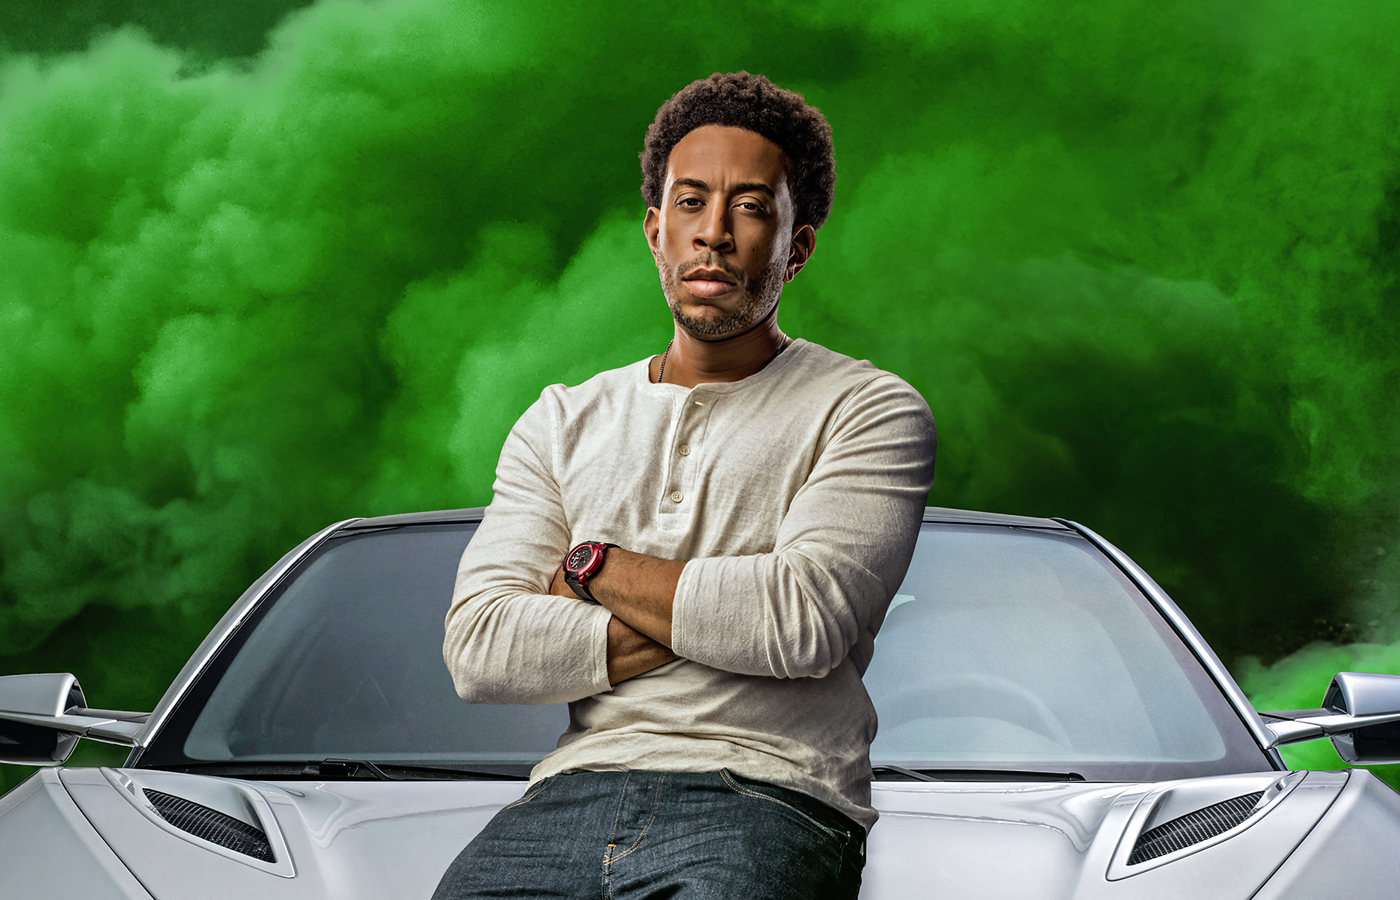 ludacris-in-fast-and-furious-9-2020-movie-3t.jpg